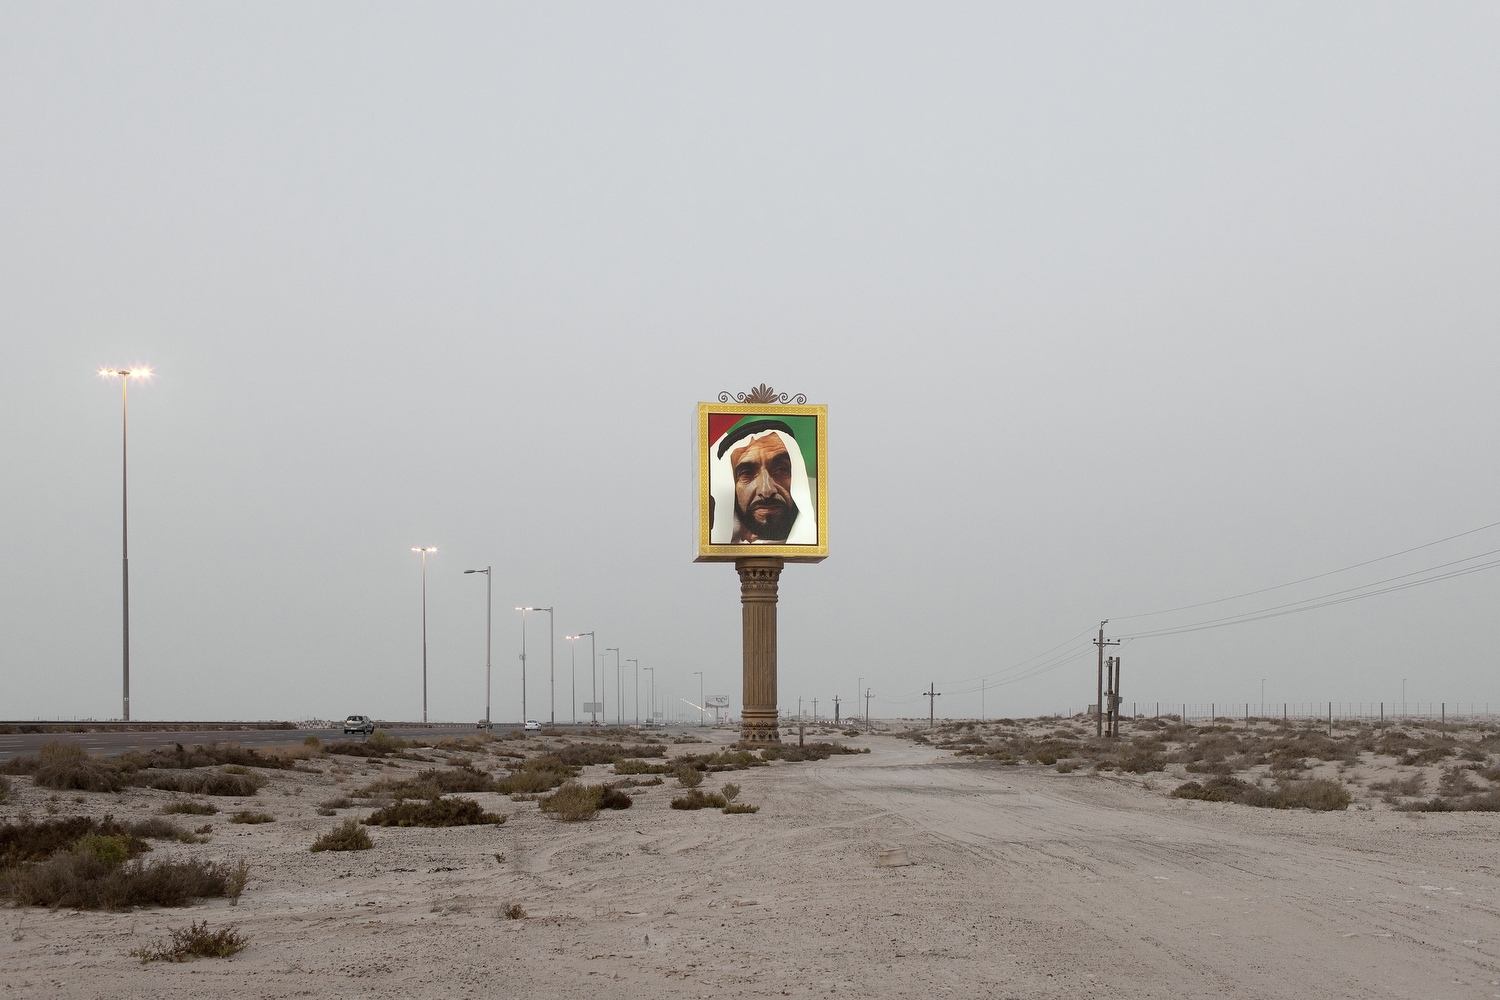 A portrait of the late Sheikh Zayed, the founder of the United Arab Emirates, on highway E-11 in Dubai.